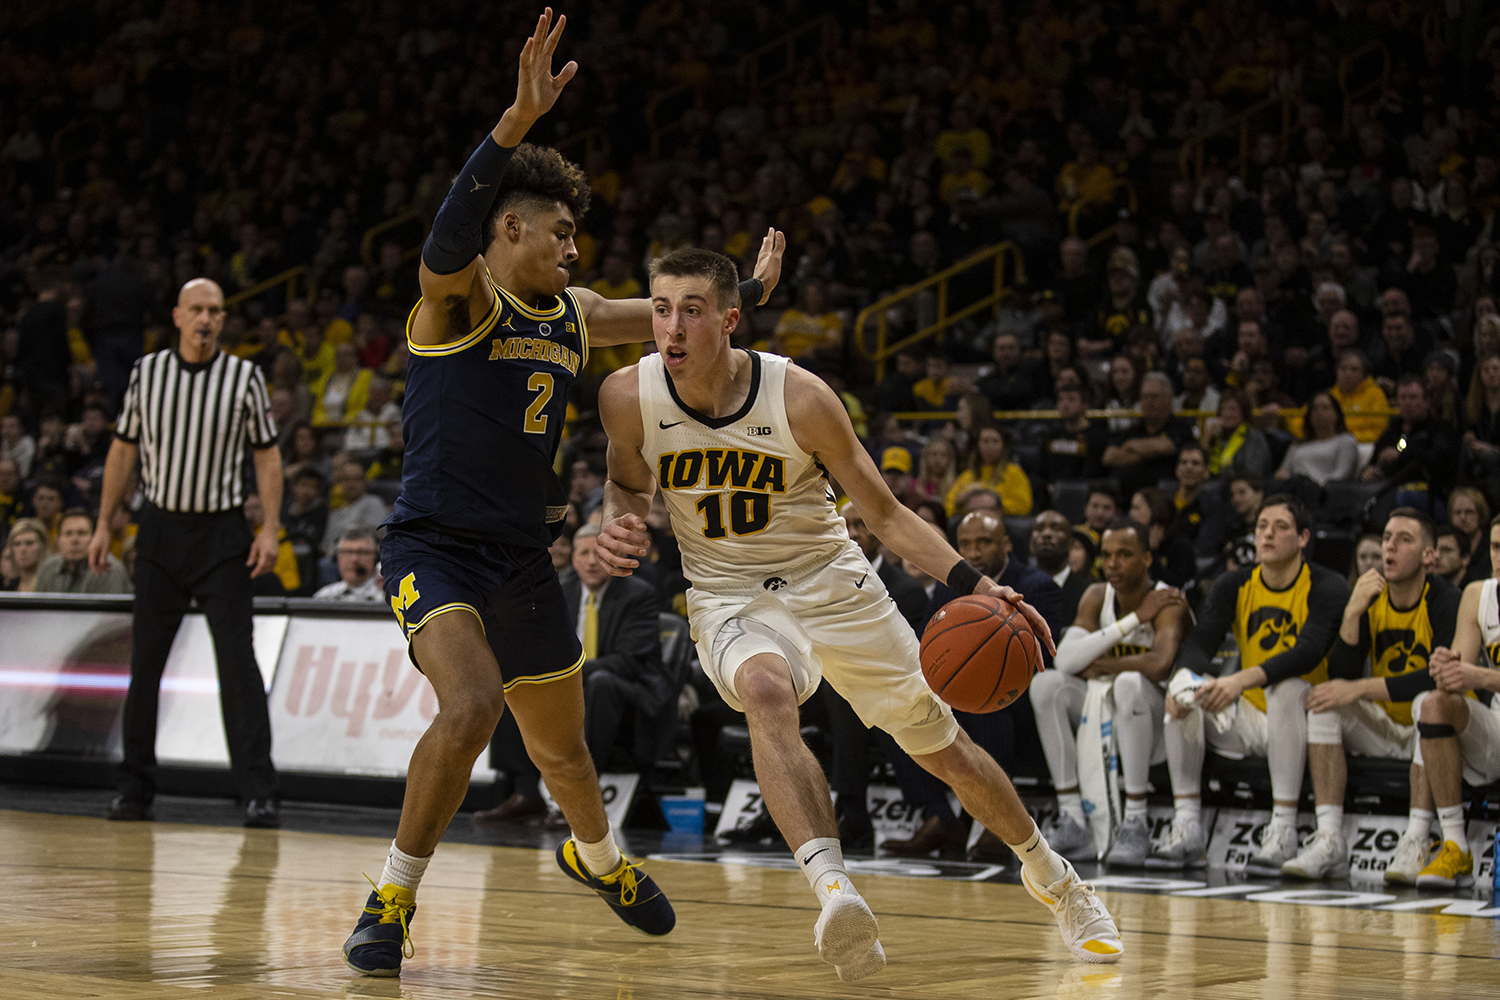 Iowa+forward+Joe+Wieskamp+drives+to+the+hoop+during+the+Iowa%2FMichigan+men%27s+basketball+game+at+Carver-Hawkeye+Arena+on+Friday%2C+February+1%2C+2019.+The+Hawkeyes+took+down+the+No.+5+ranked+Wolverines%2C+74-59.+